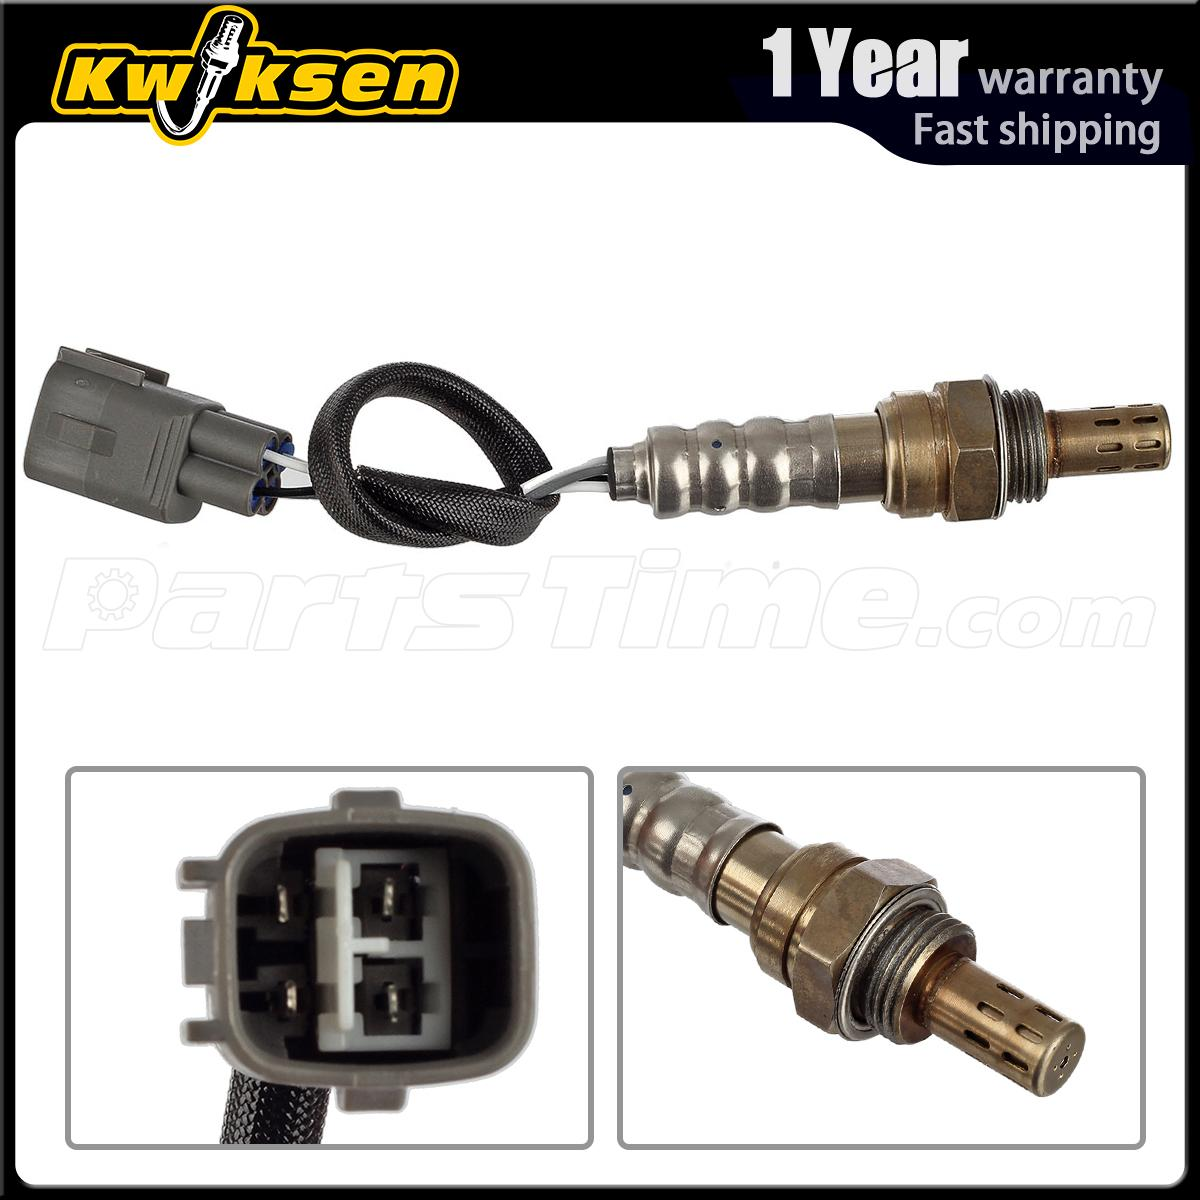 2005 Lexus Sc430 Oxygen Sensor 4 3l: Oxygen Sensor Front Upstream Left For GS430 SC430 LS430